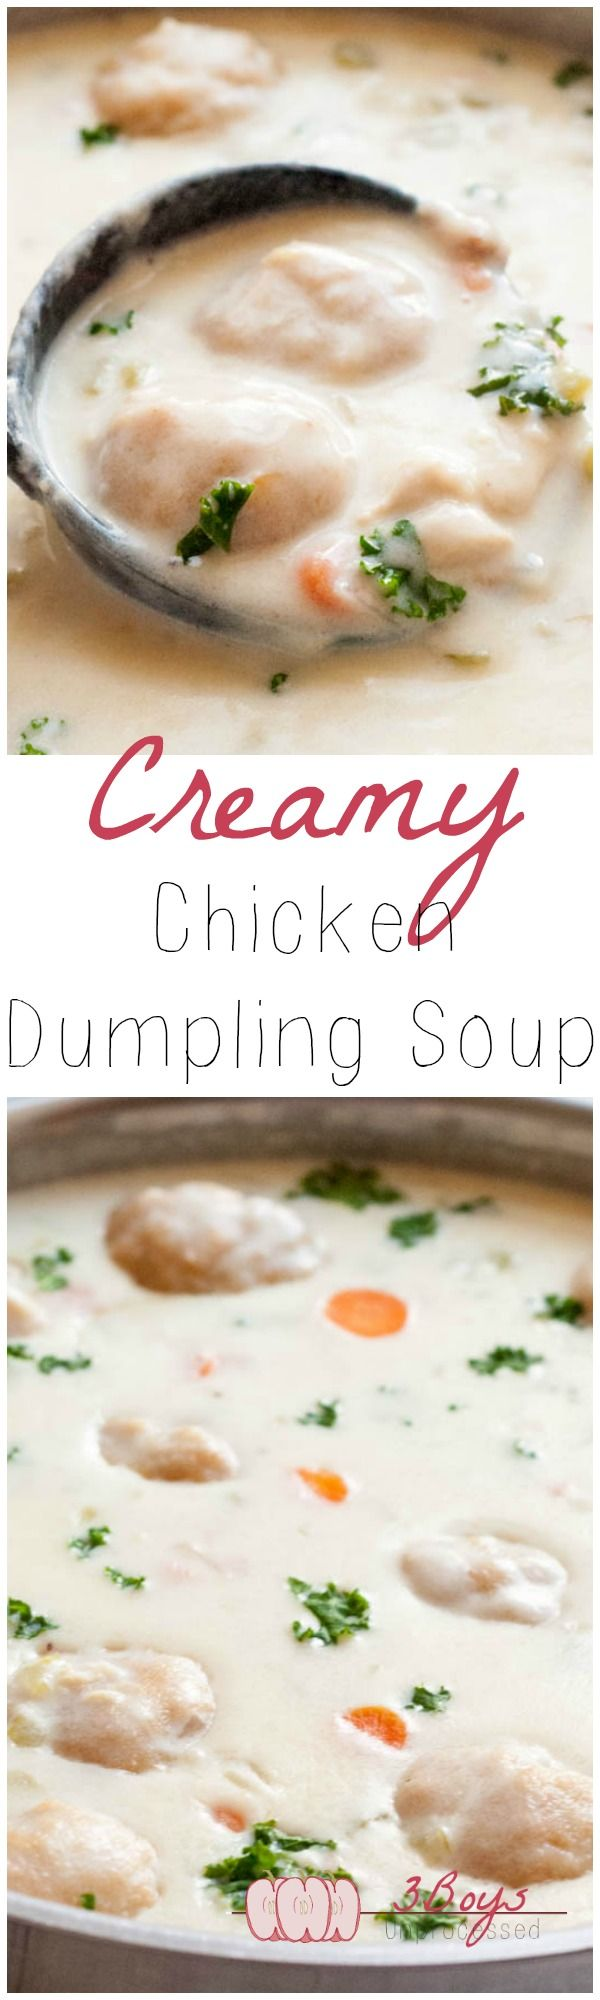 EASY and comforting Creamy Chicken and Dumpling Soup, 100% from scratch. Great for chilly fall evenings and snow days! || www.3boysunprocessed.com